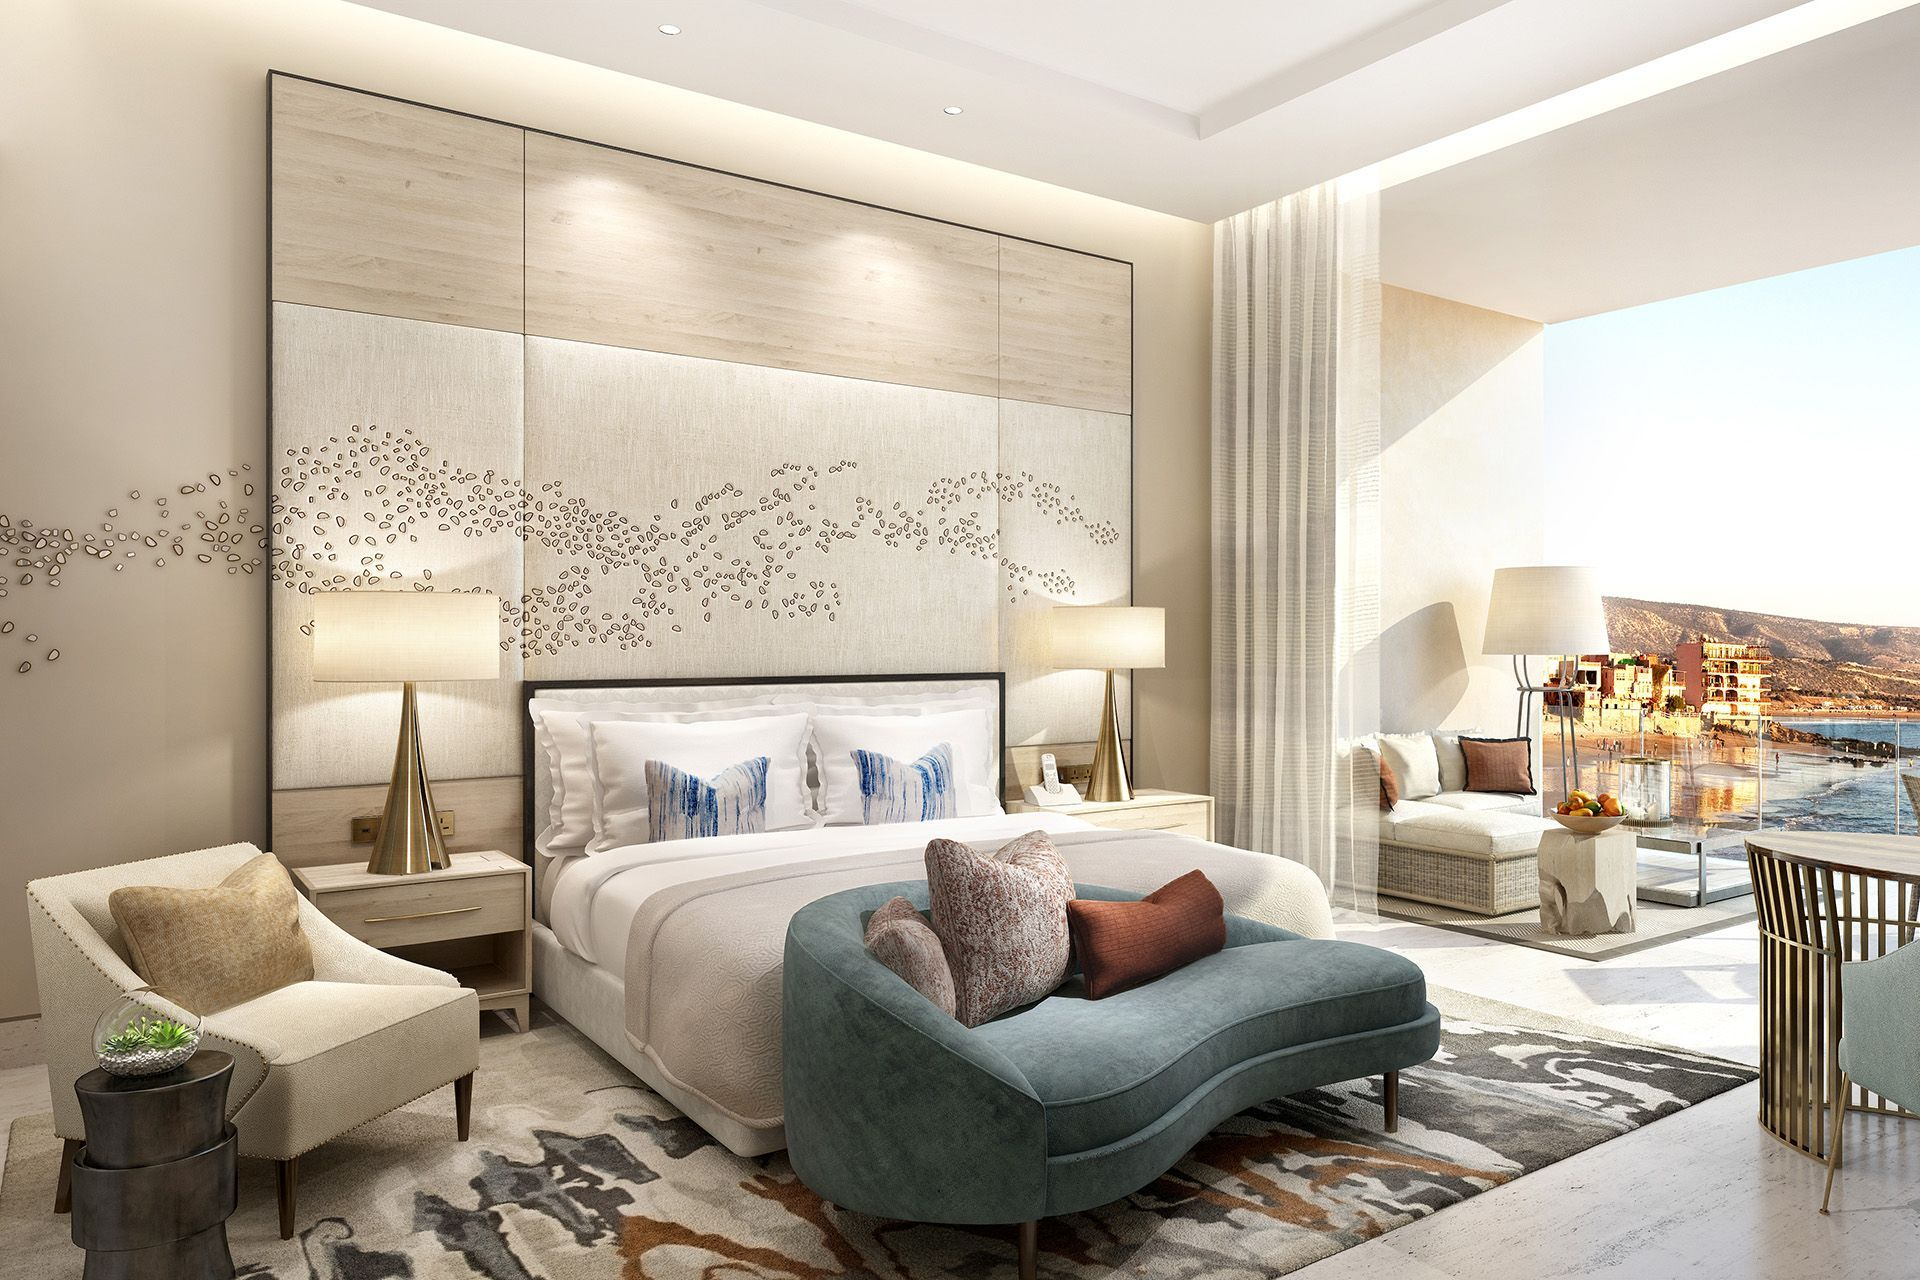 Four seasons taghazout interior designers wimberly for Bed decoration